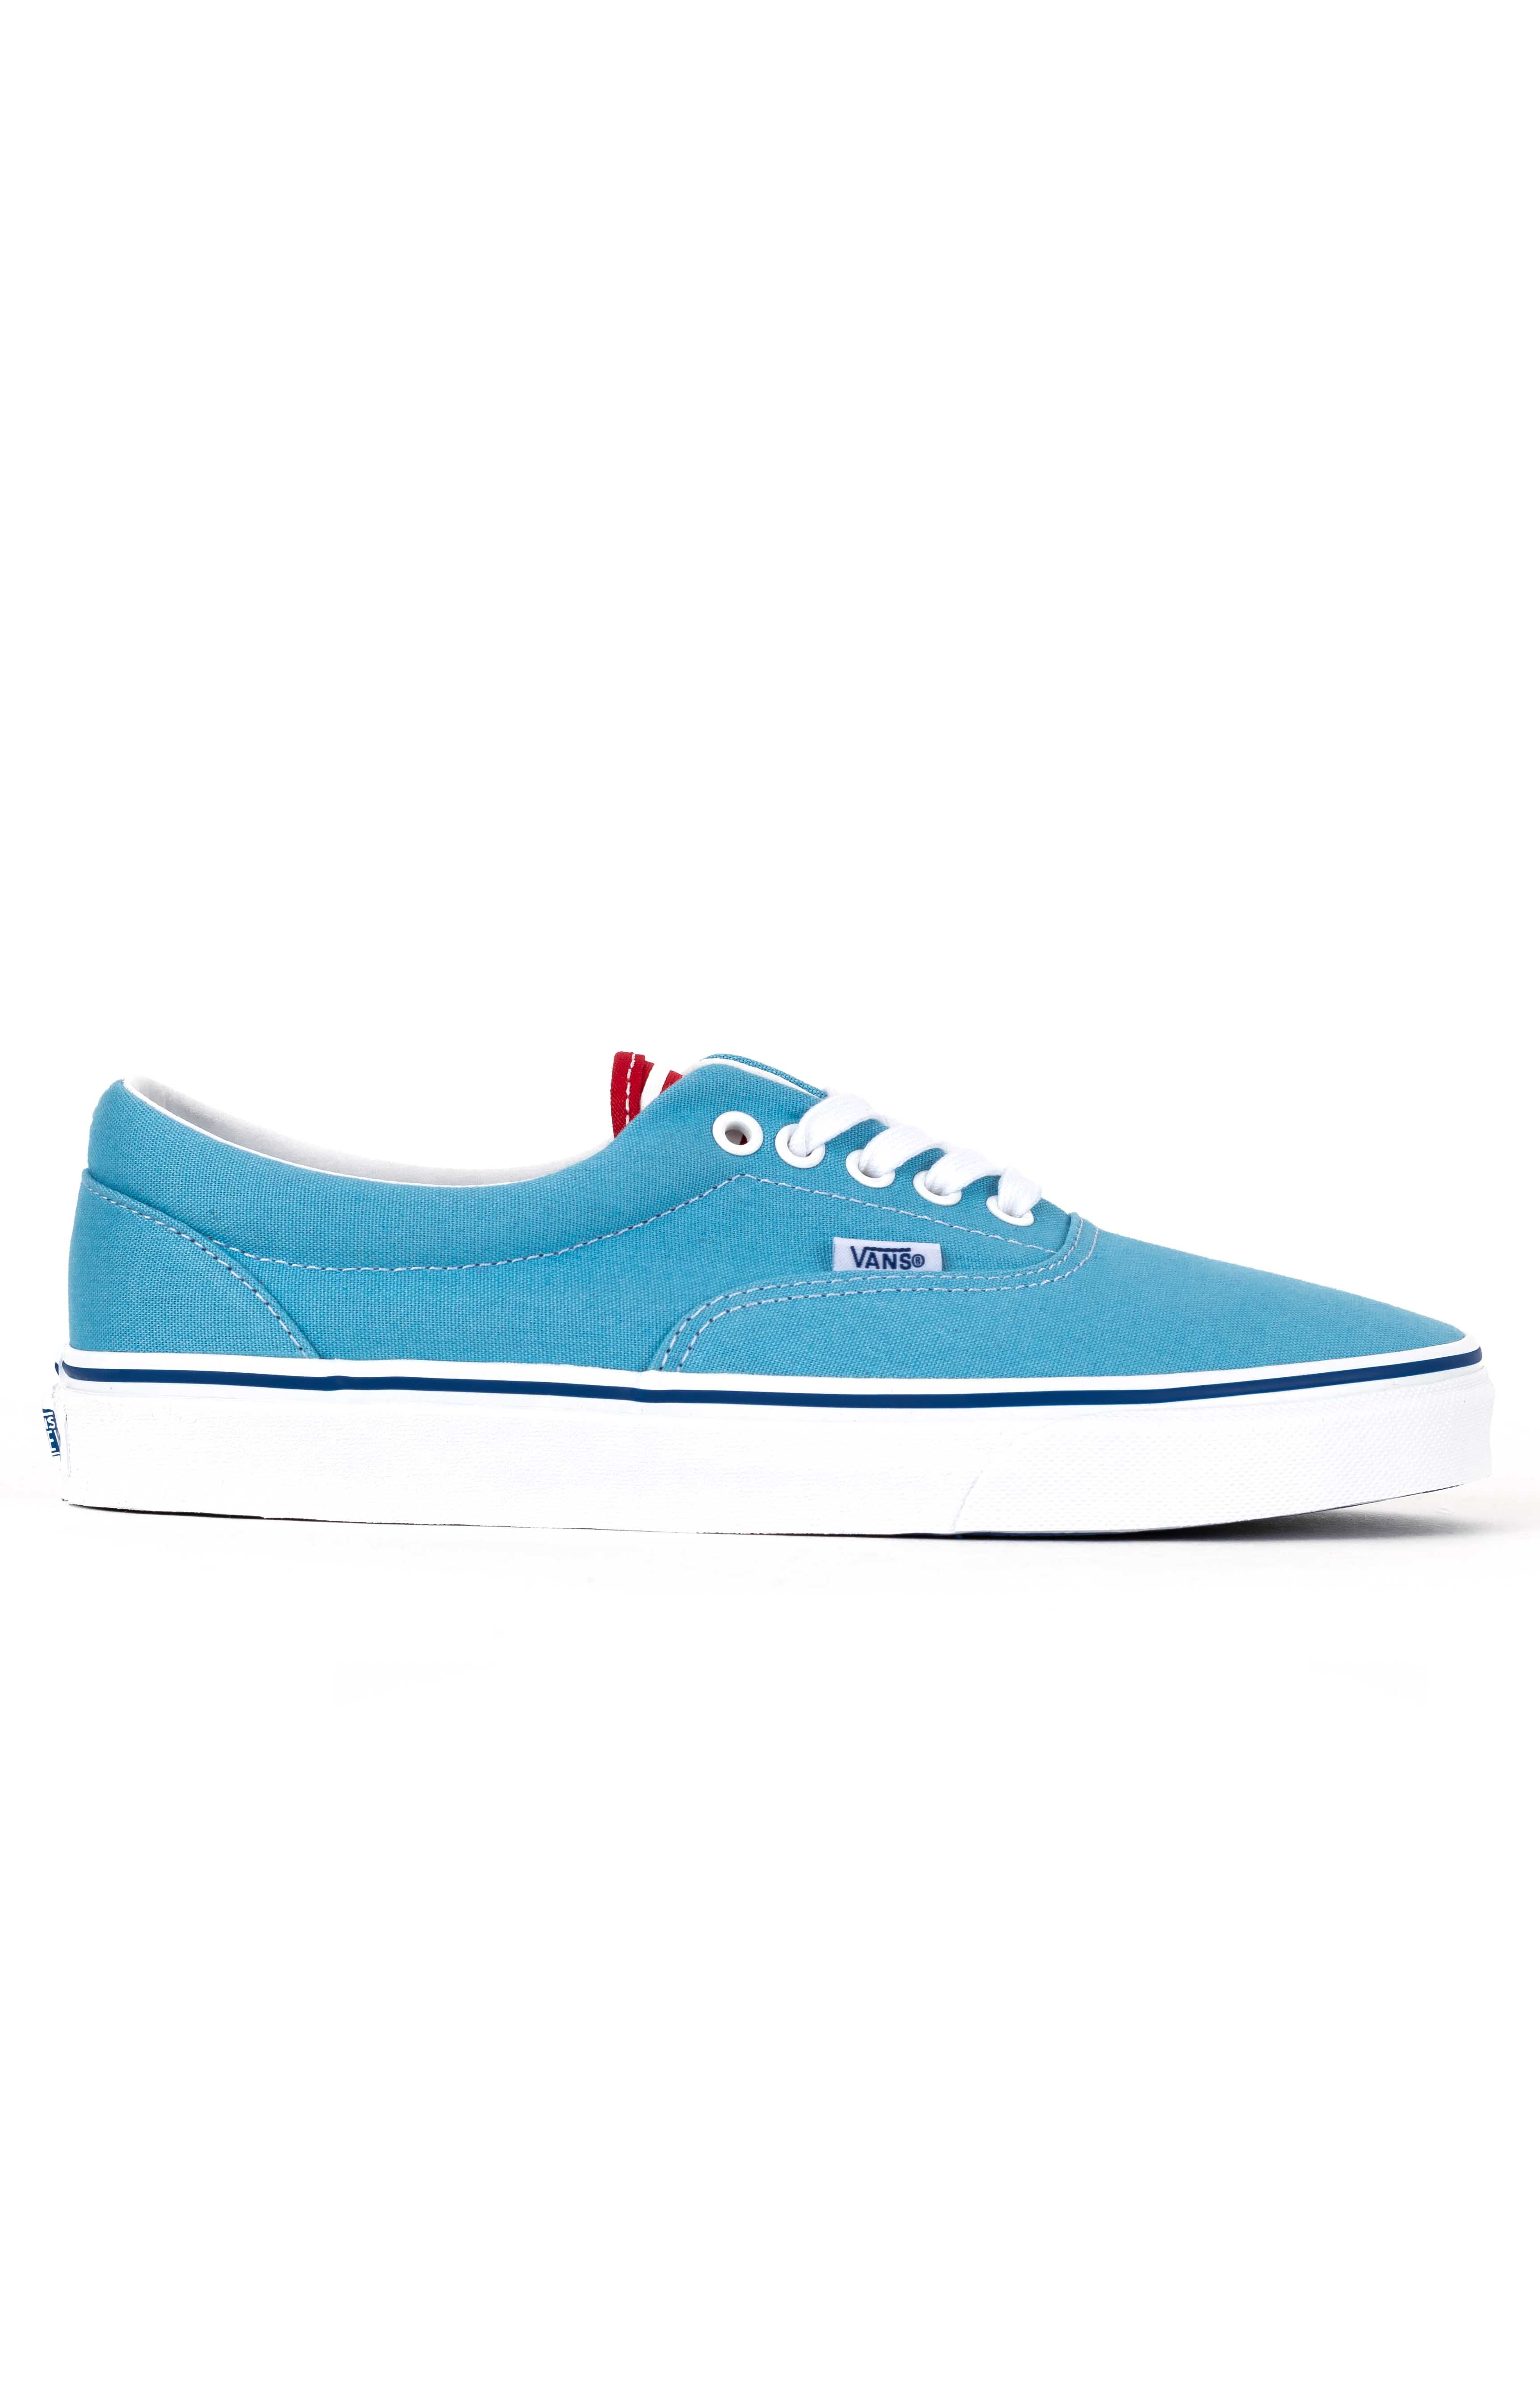 (8FRVPO) Deck Club Era Shoe - Alaskan Blue